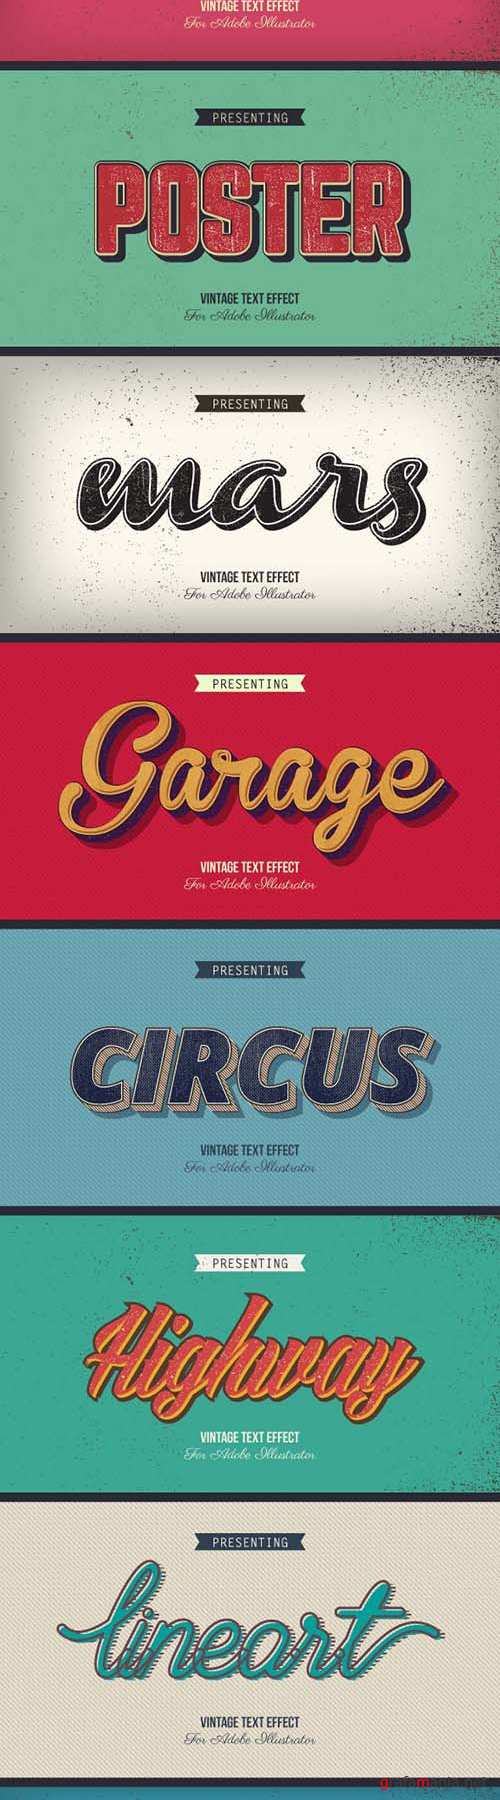 GraphicRiver - Vintage and Retro Styles V9 10981418